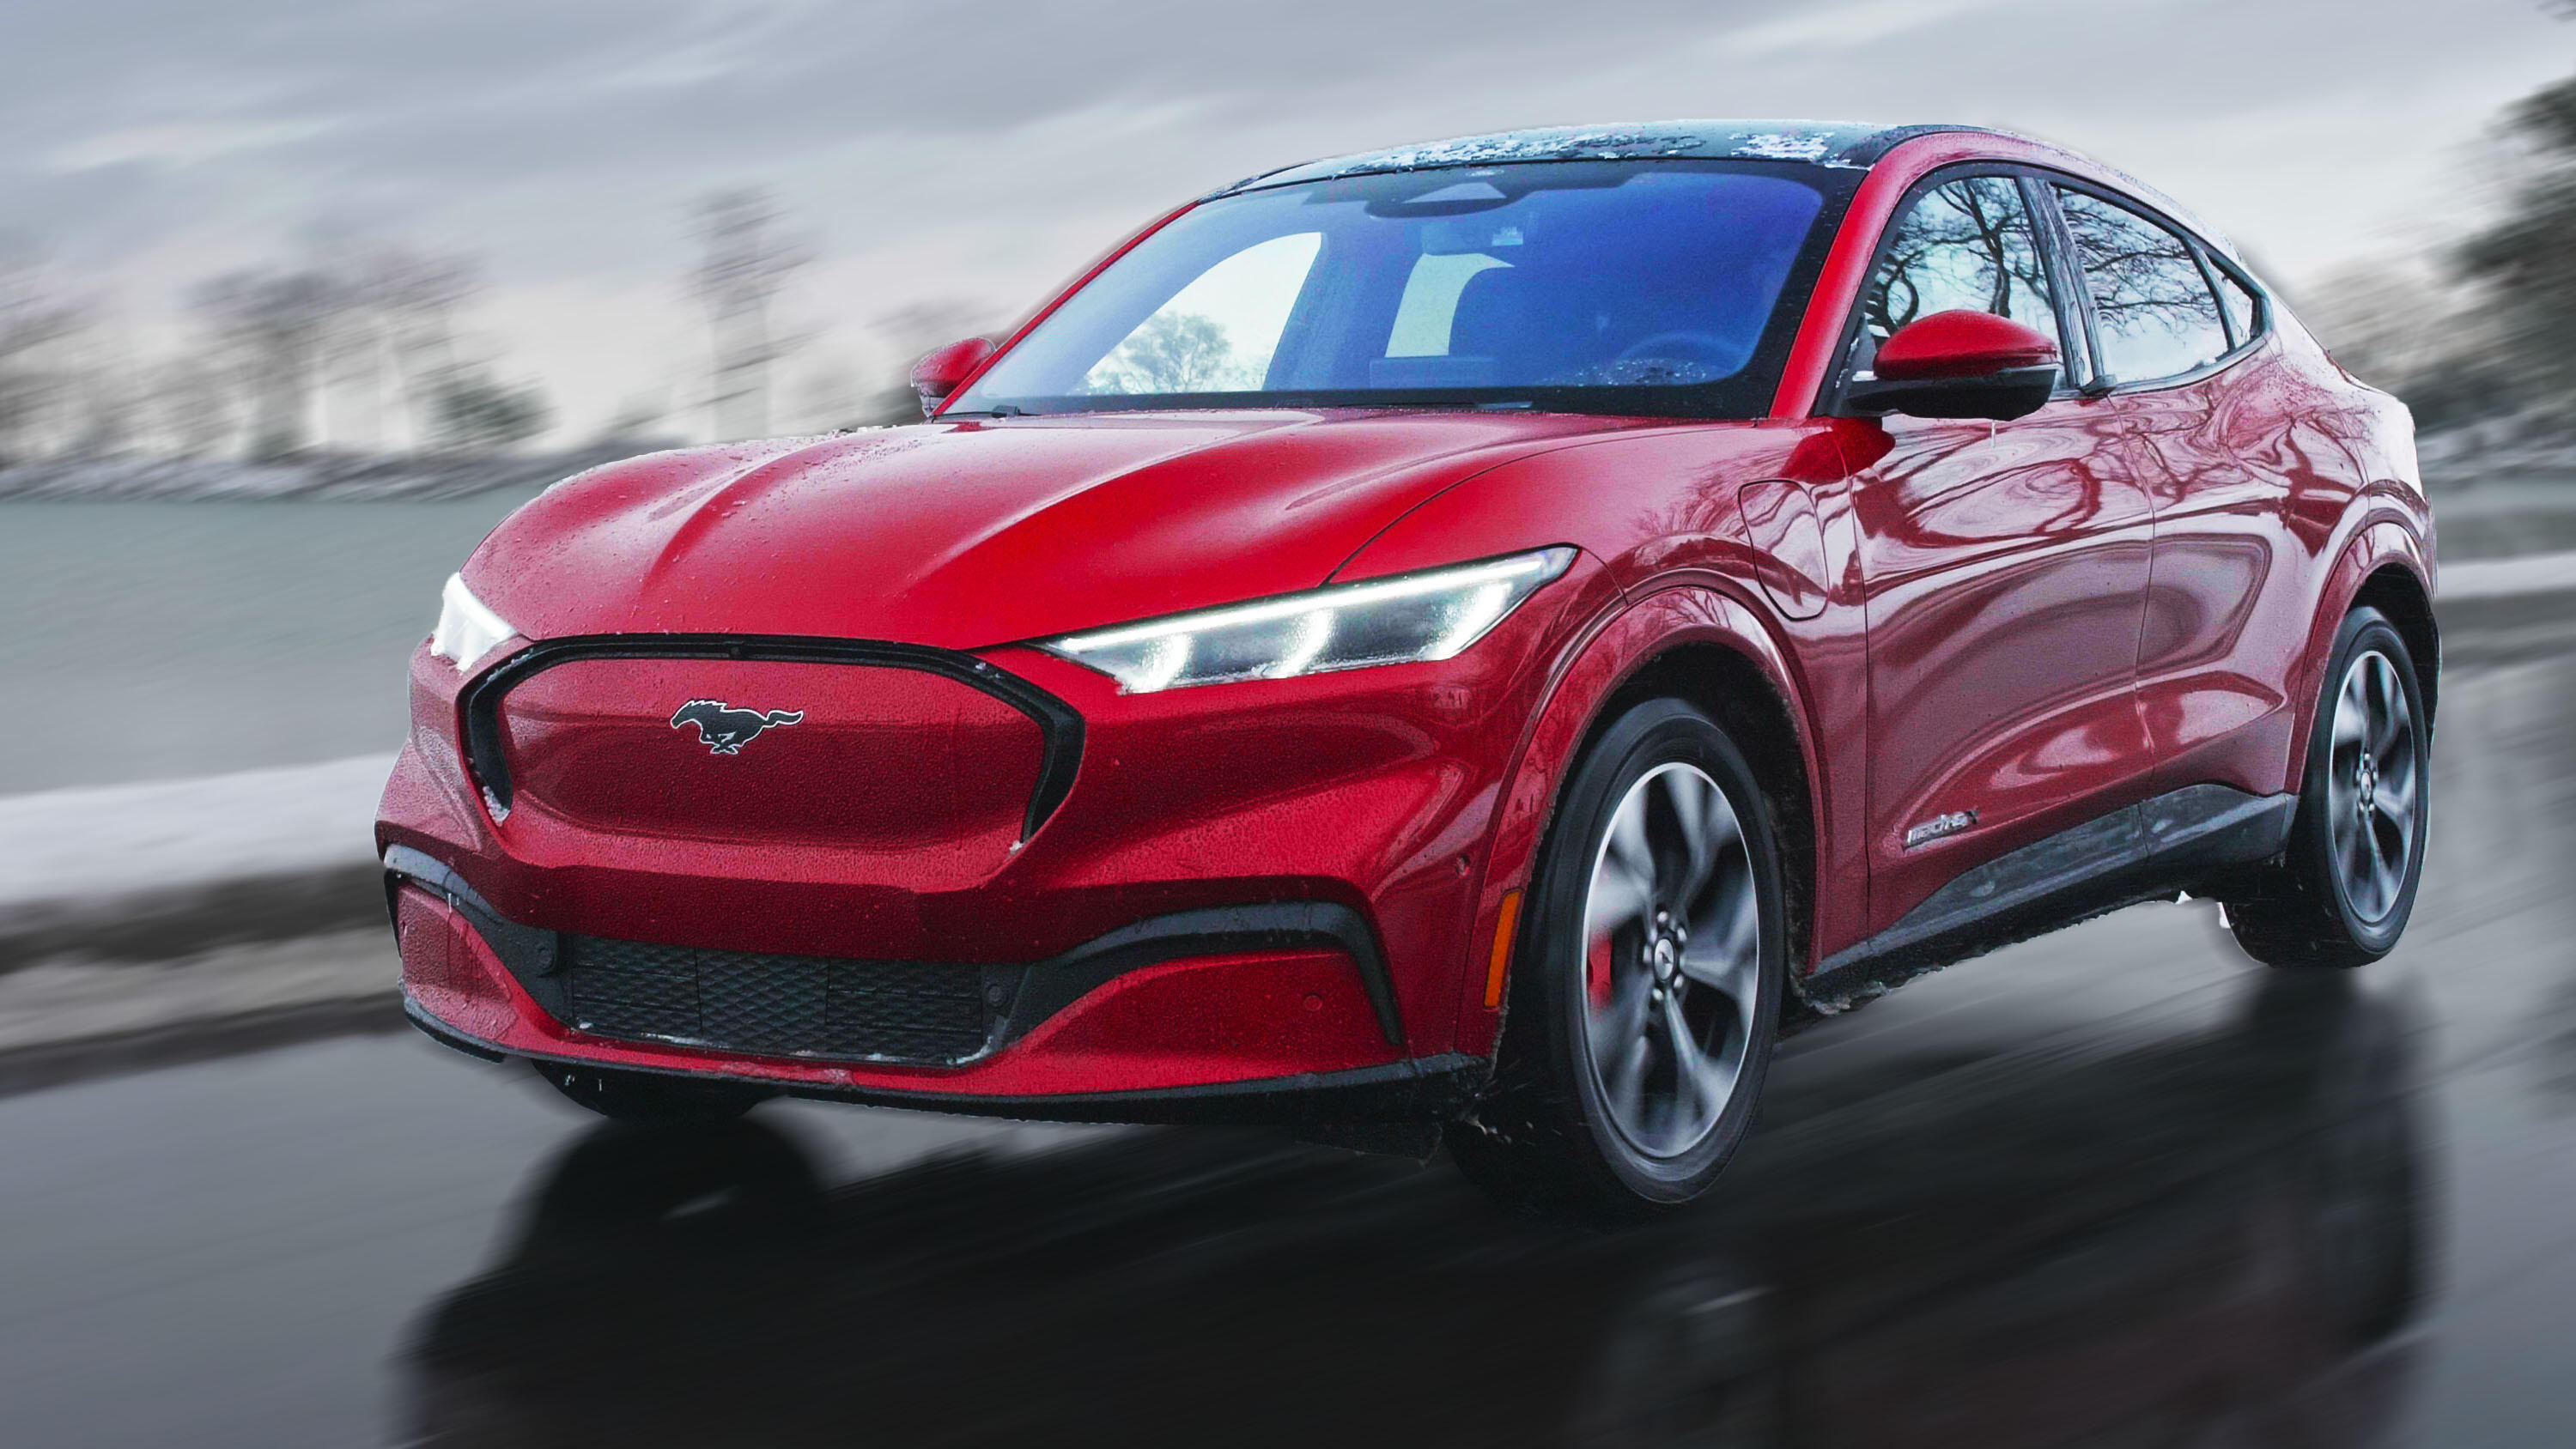 Video: 2021 Ford Mustang Mach-E: Not yet a good Mustang, but a very good EV